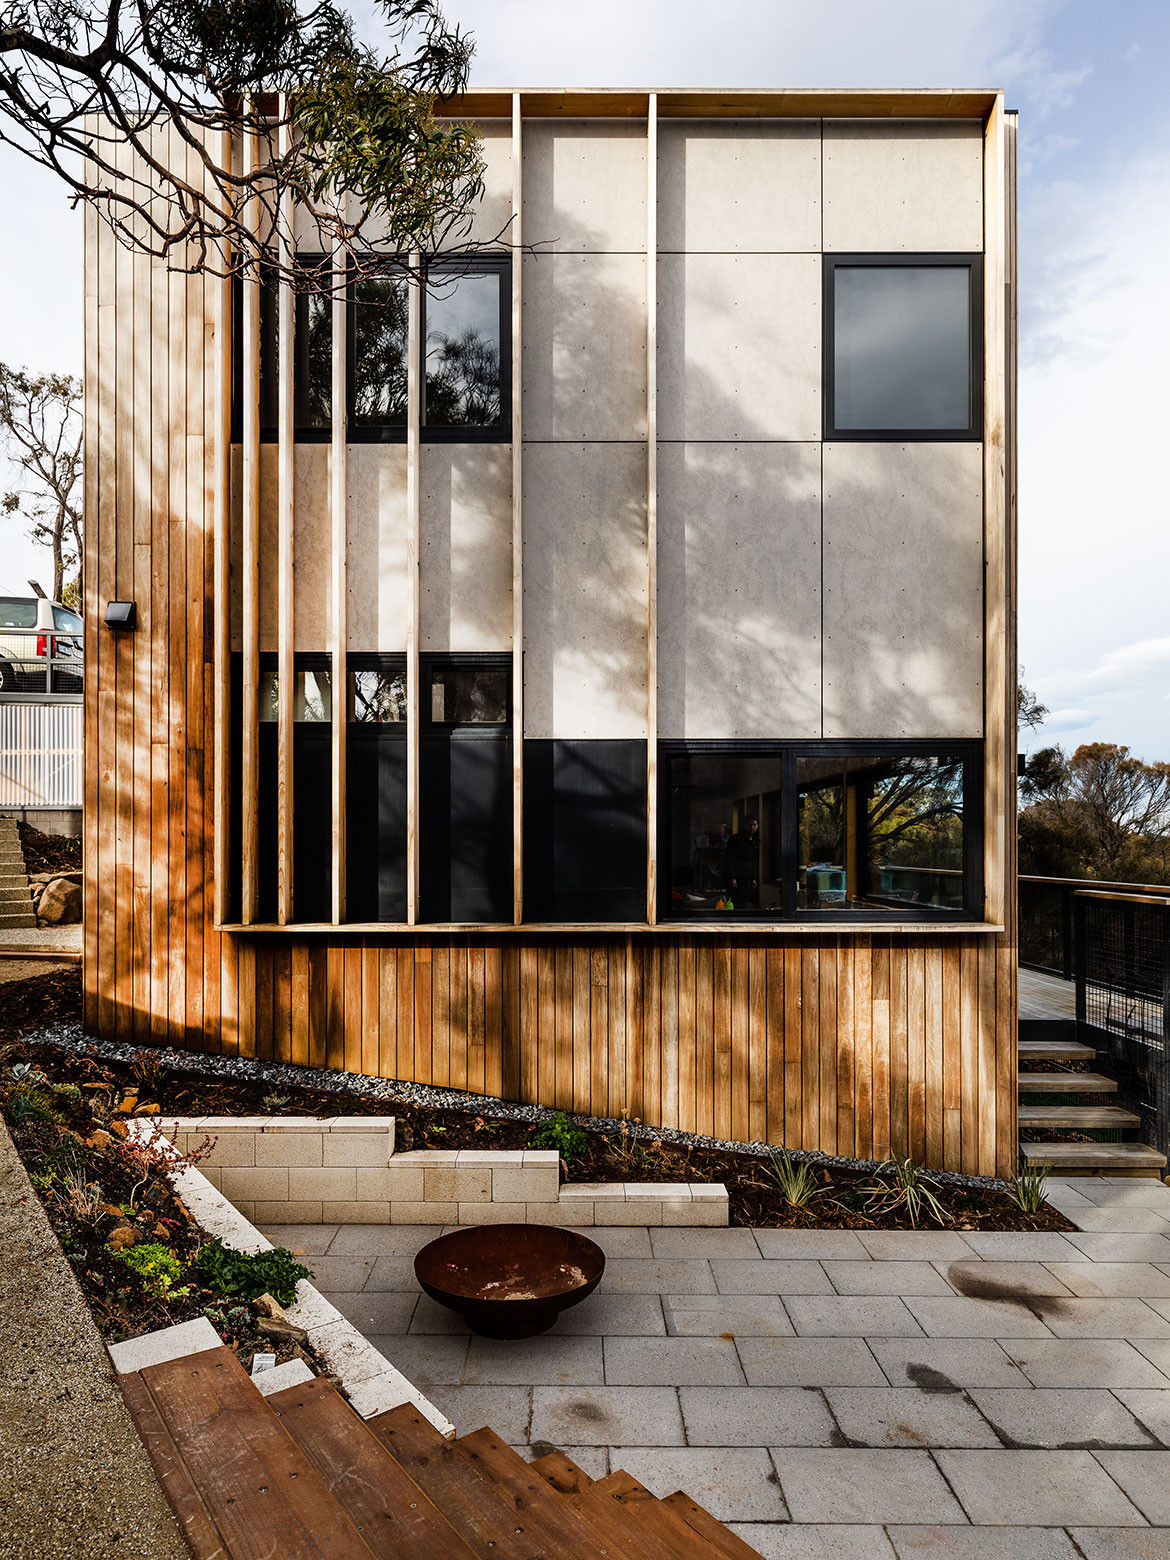 Cumulus Studio's brief for Midway Point House, in Tasmania, requested privacy from the street while also capturing northern sun, and to make the most of western views but minimise glare and heat gains / loss.